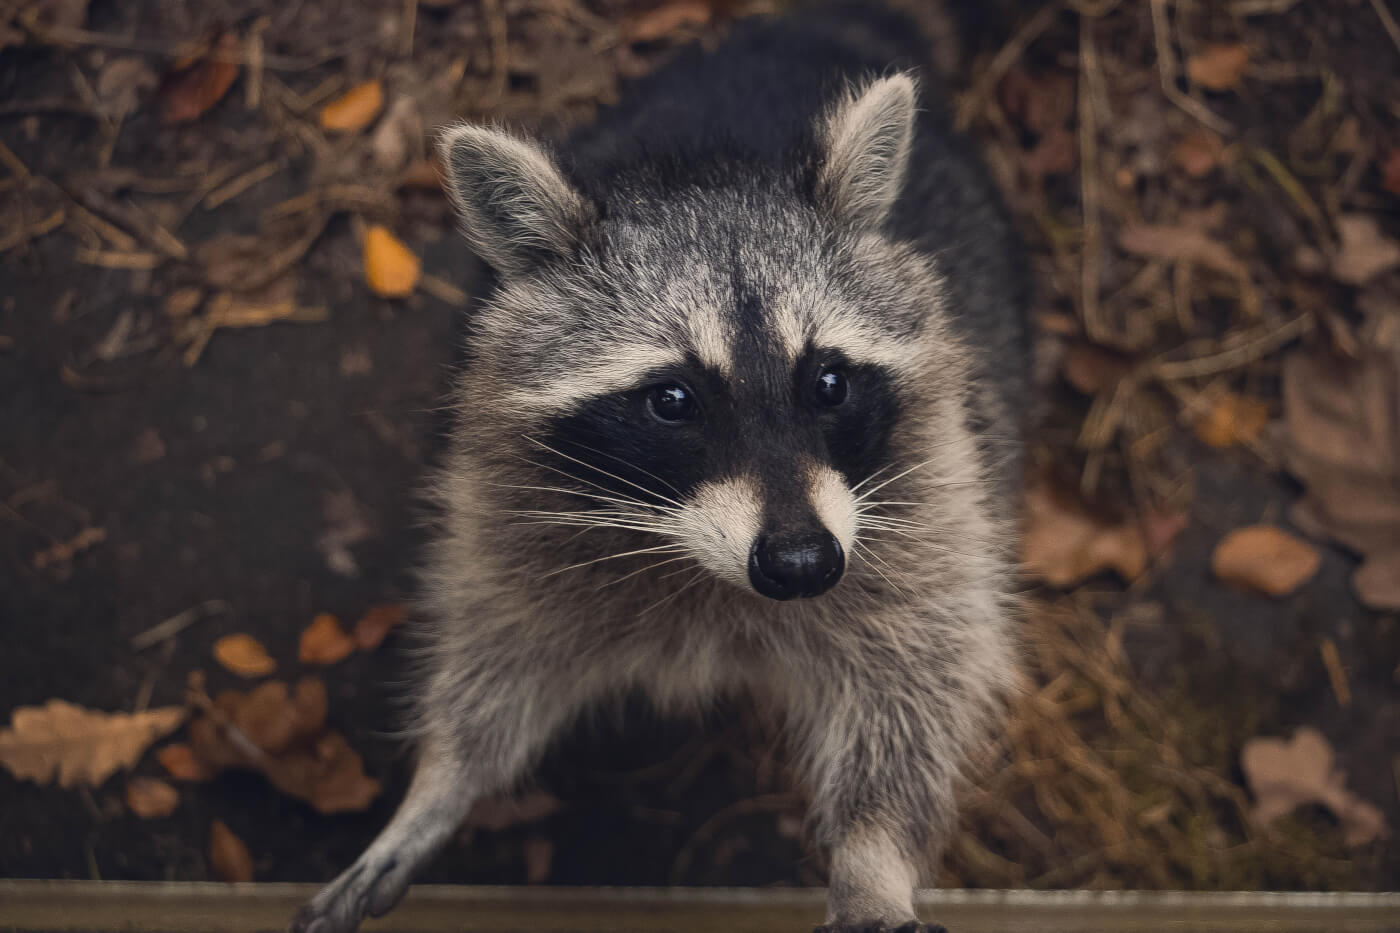 Here's How to Help Wild Animals in Need